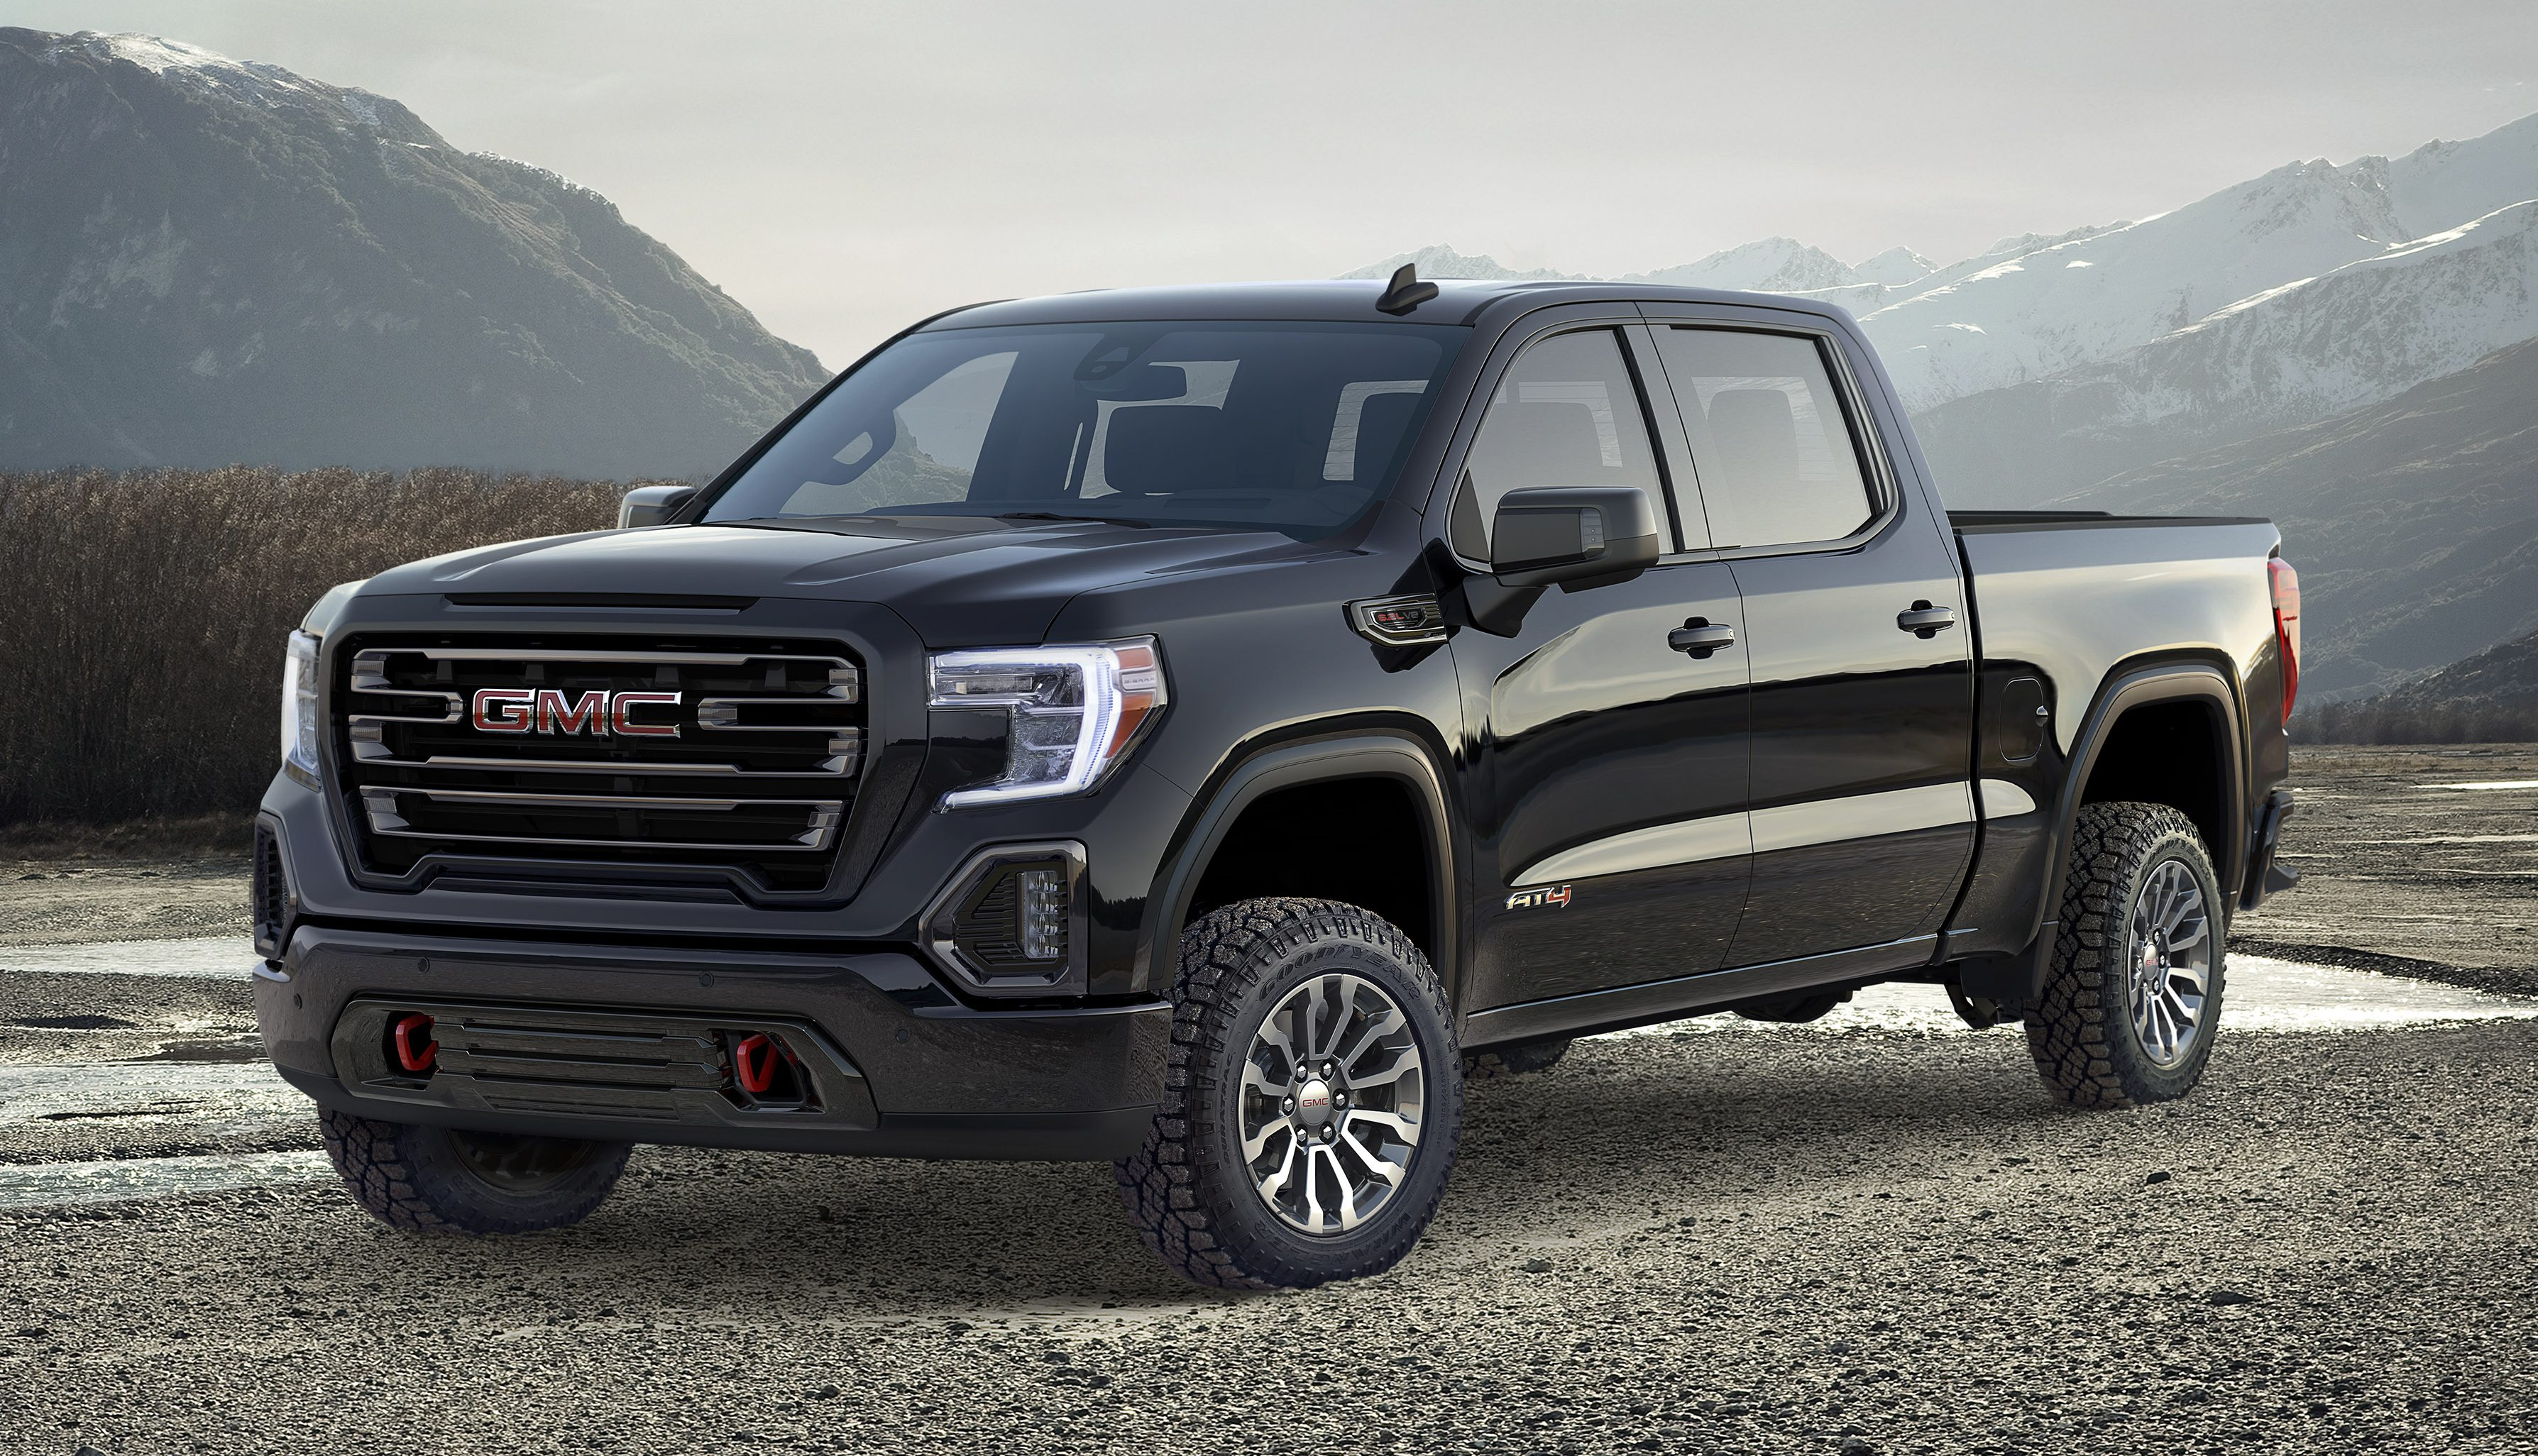 Toyota Tacoma 2015-2018 Service Manual: Open in Bus 2 Main Bus Line